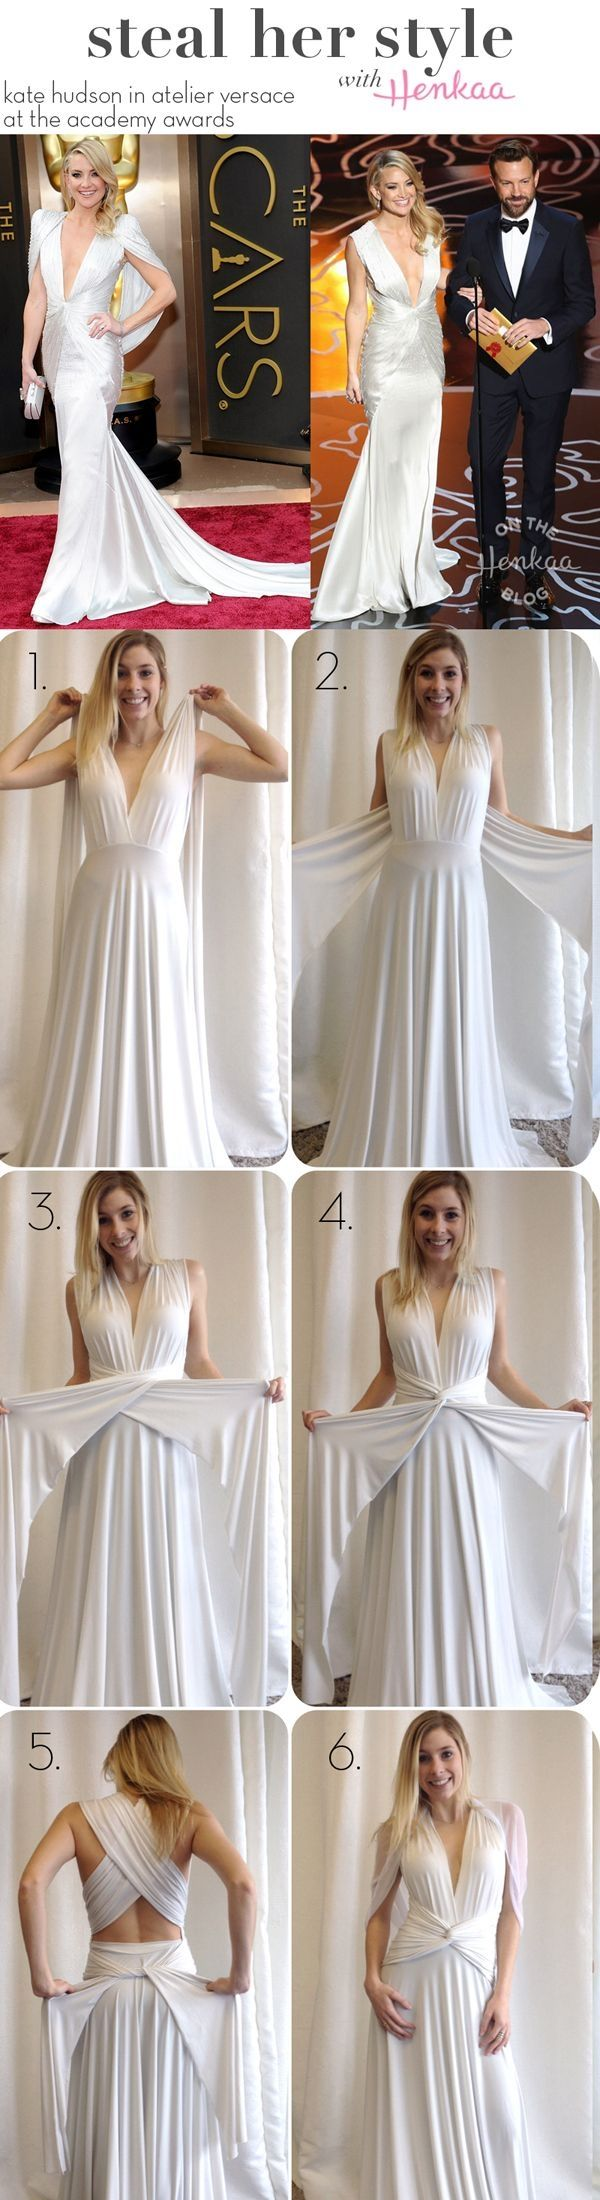 Steal Kate Hudson's Oscars style with a convertible dress! One dress that can be worn in multiple ways and styled for any occasion! by claudia